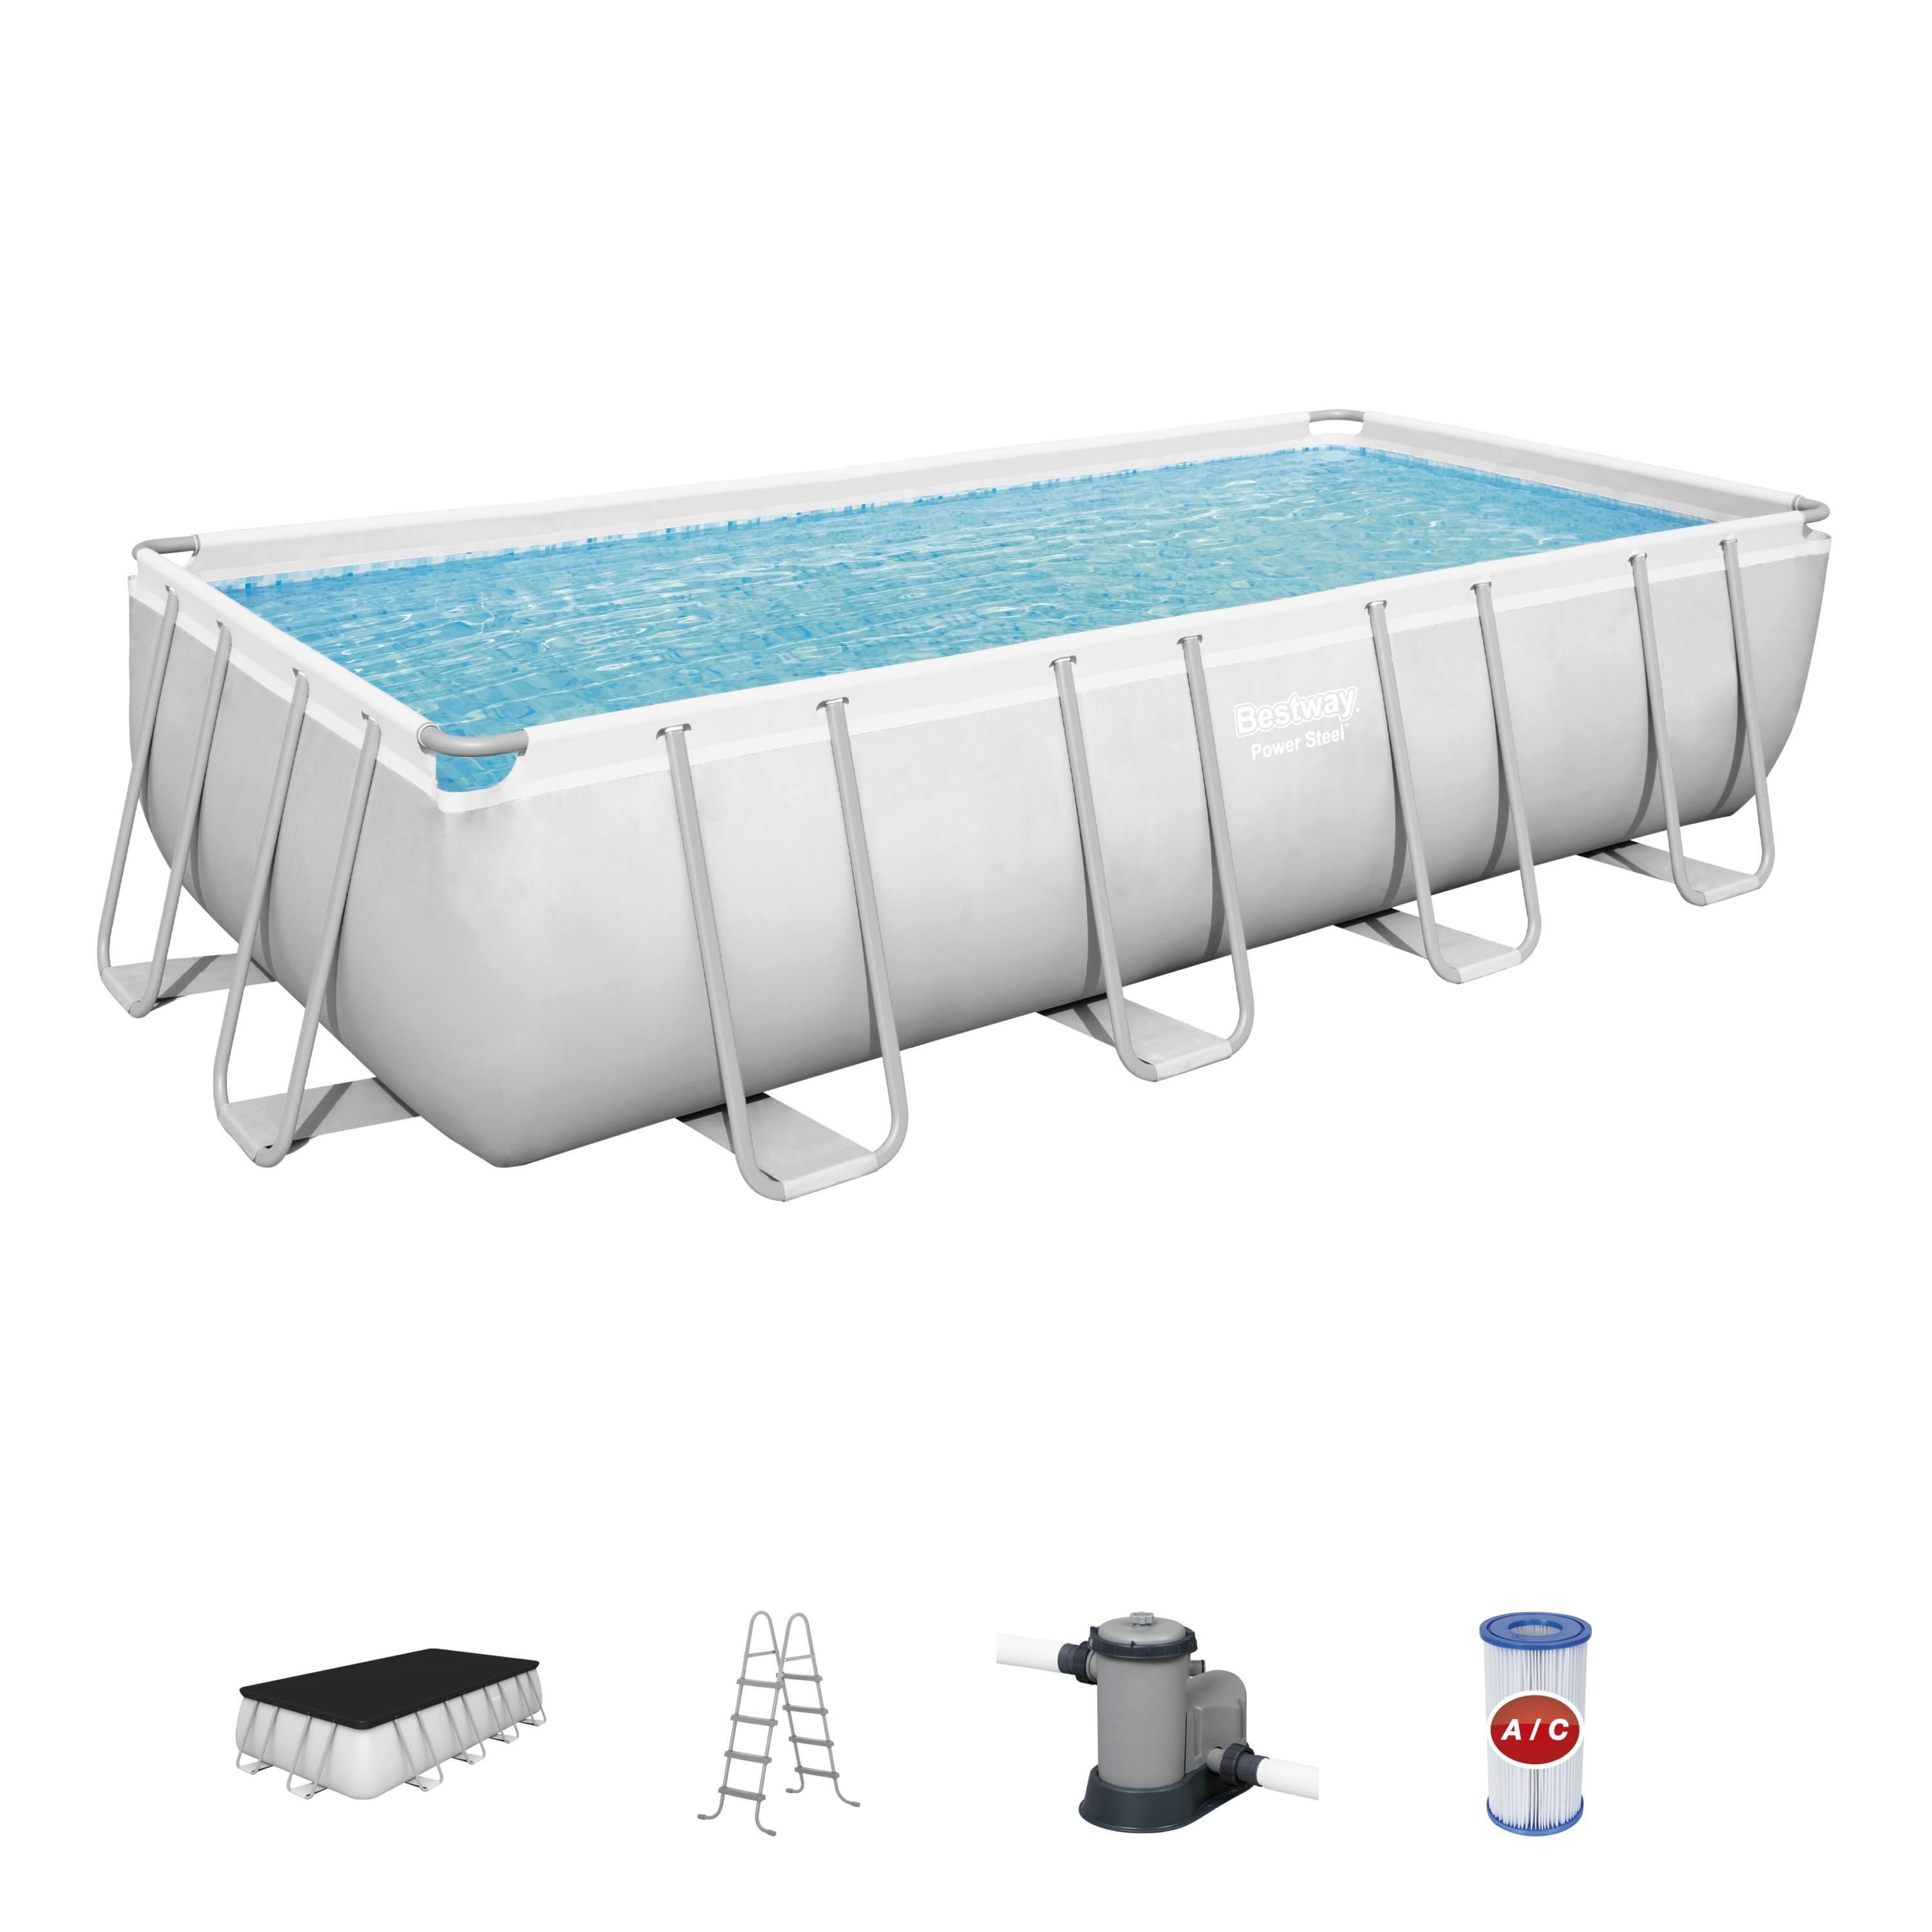 Bestway Power Steel 18′ x 9′ x 48″ Rectangular Metal Frame Swimming Pool Set with Pump, Ladder and Cover